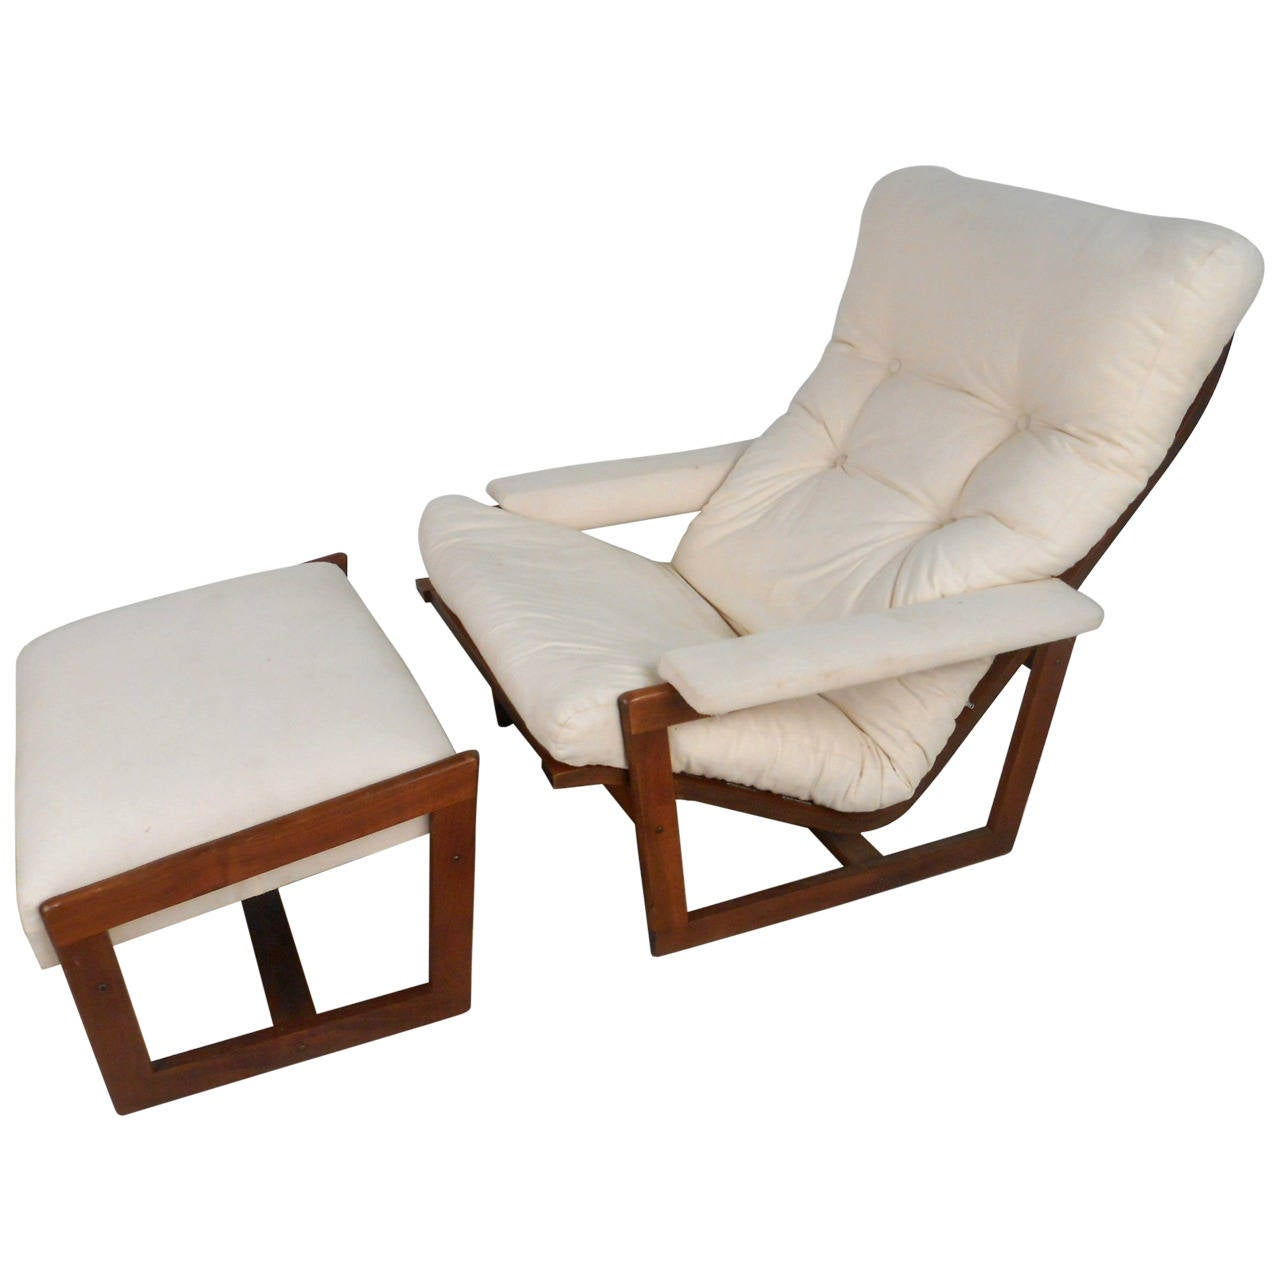 Unique mid century modern teak frame lounge chair with